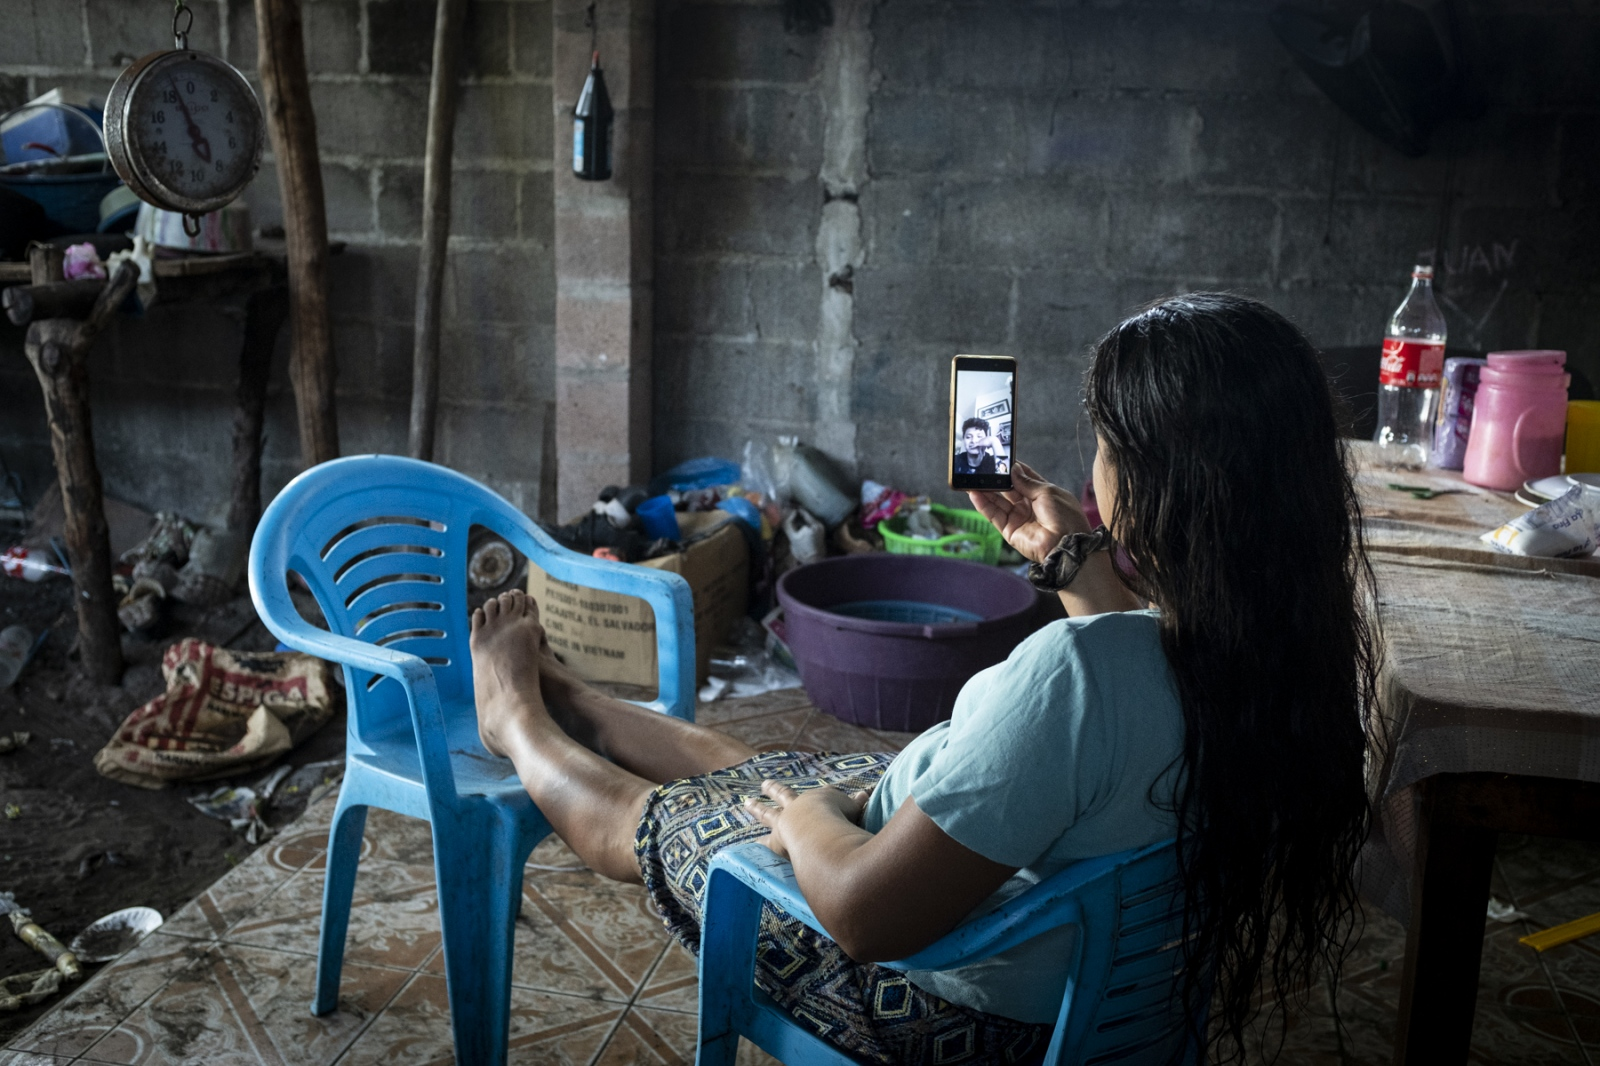 Beatriz Elias, 35, speaks with her son Juan Carlos, who migrated from his coastal community of La Barra de Santiago, El Salvador to the United States last November. They talk only on weekends, when Juan Carlos is off from his job as an electrician, from which he makes $14 per hour.